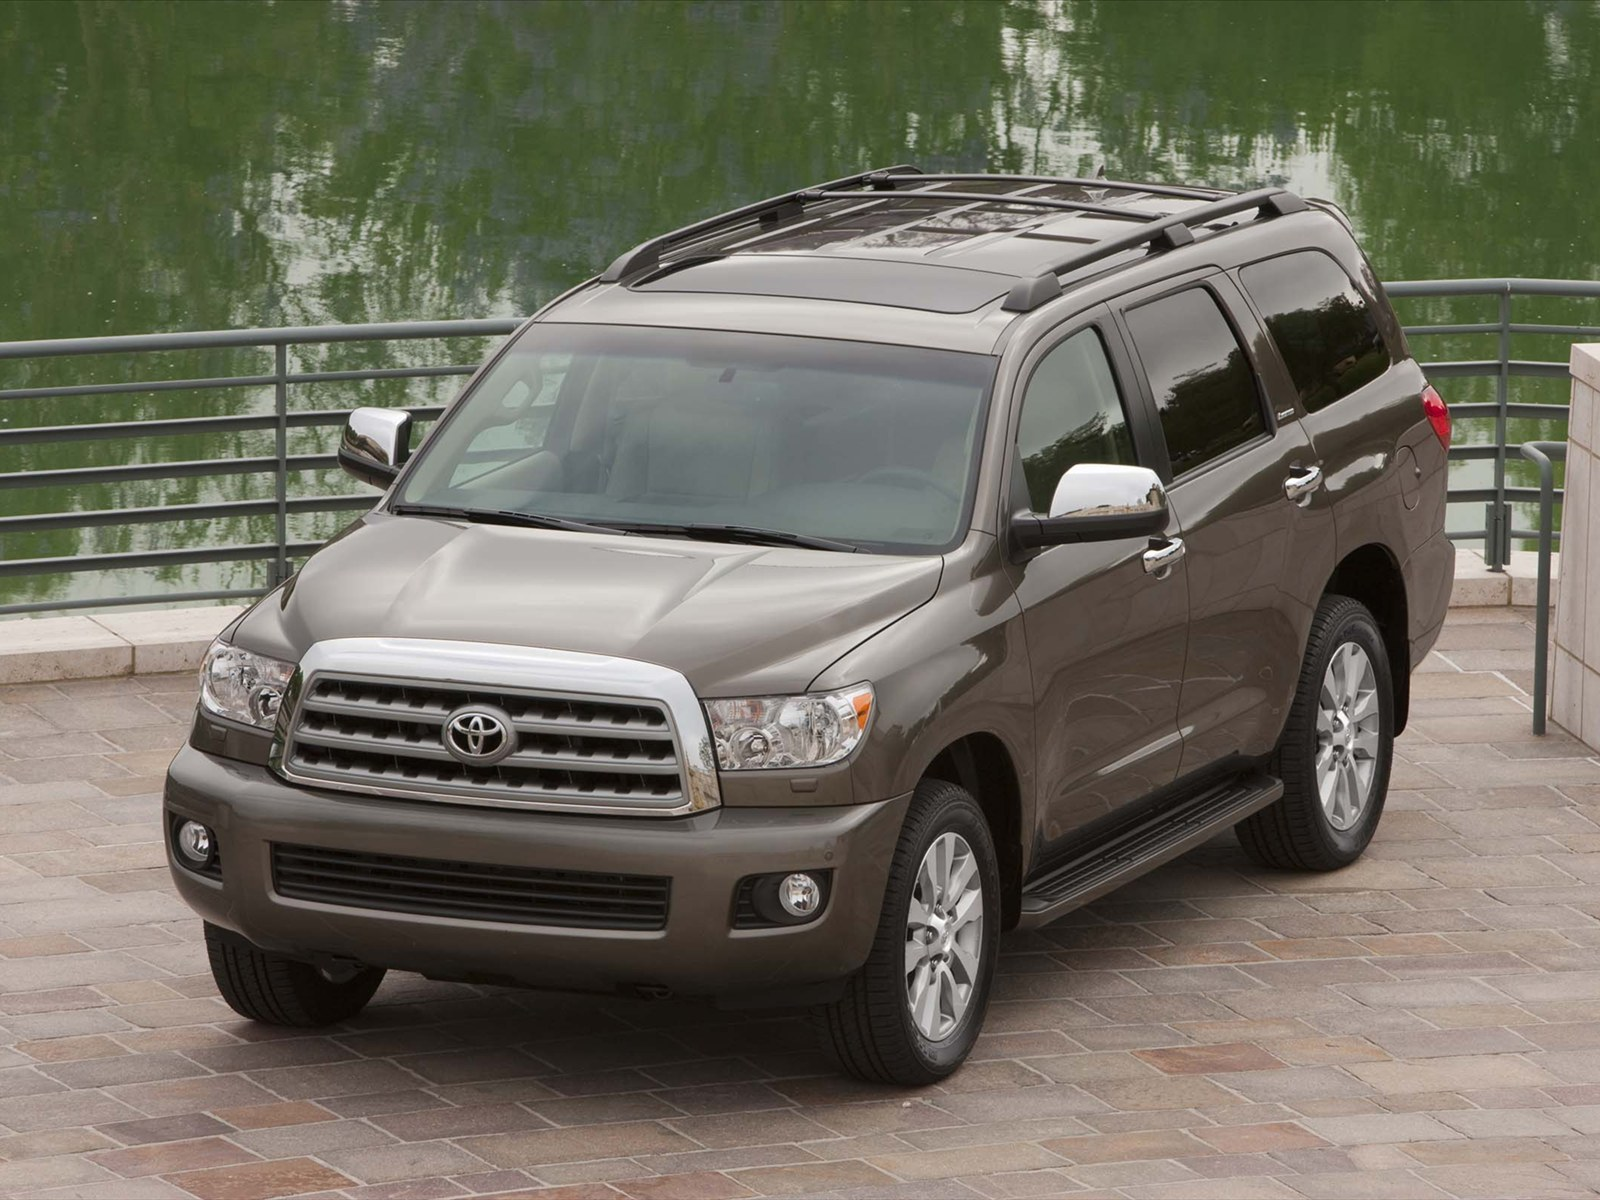 2017 Toyota Sequoia Front Top Angle View